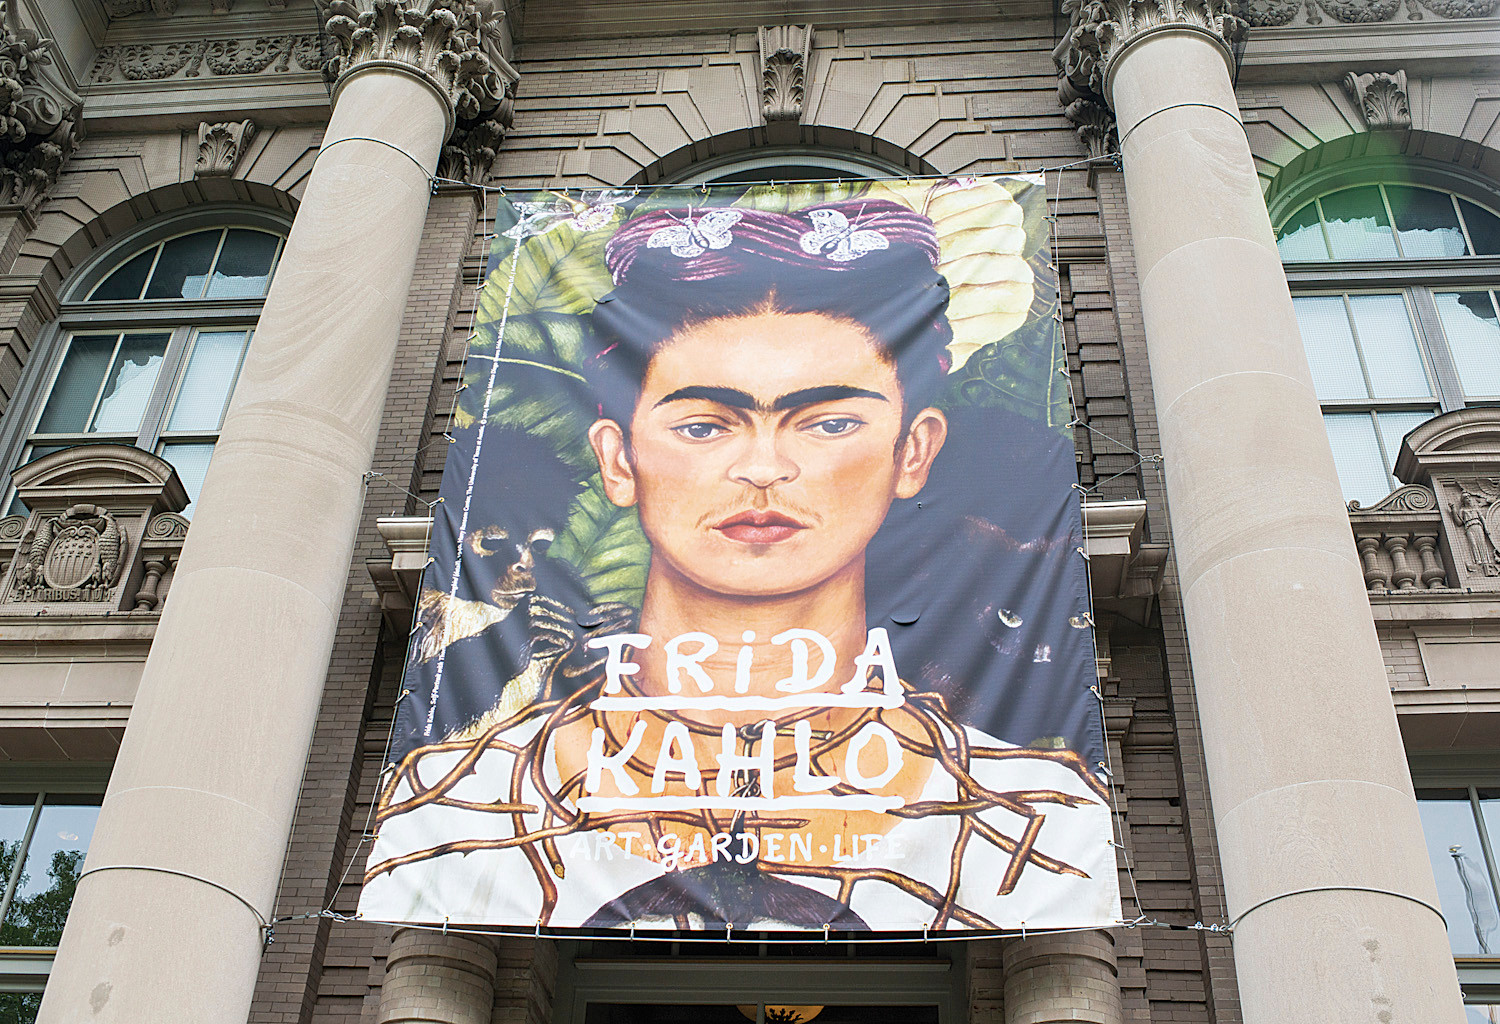 A large Frida Kahlo print hangs over the Britton Rotunda entrance.